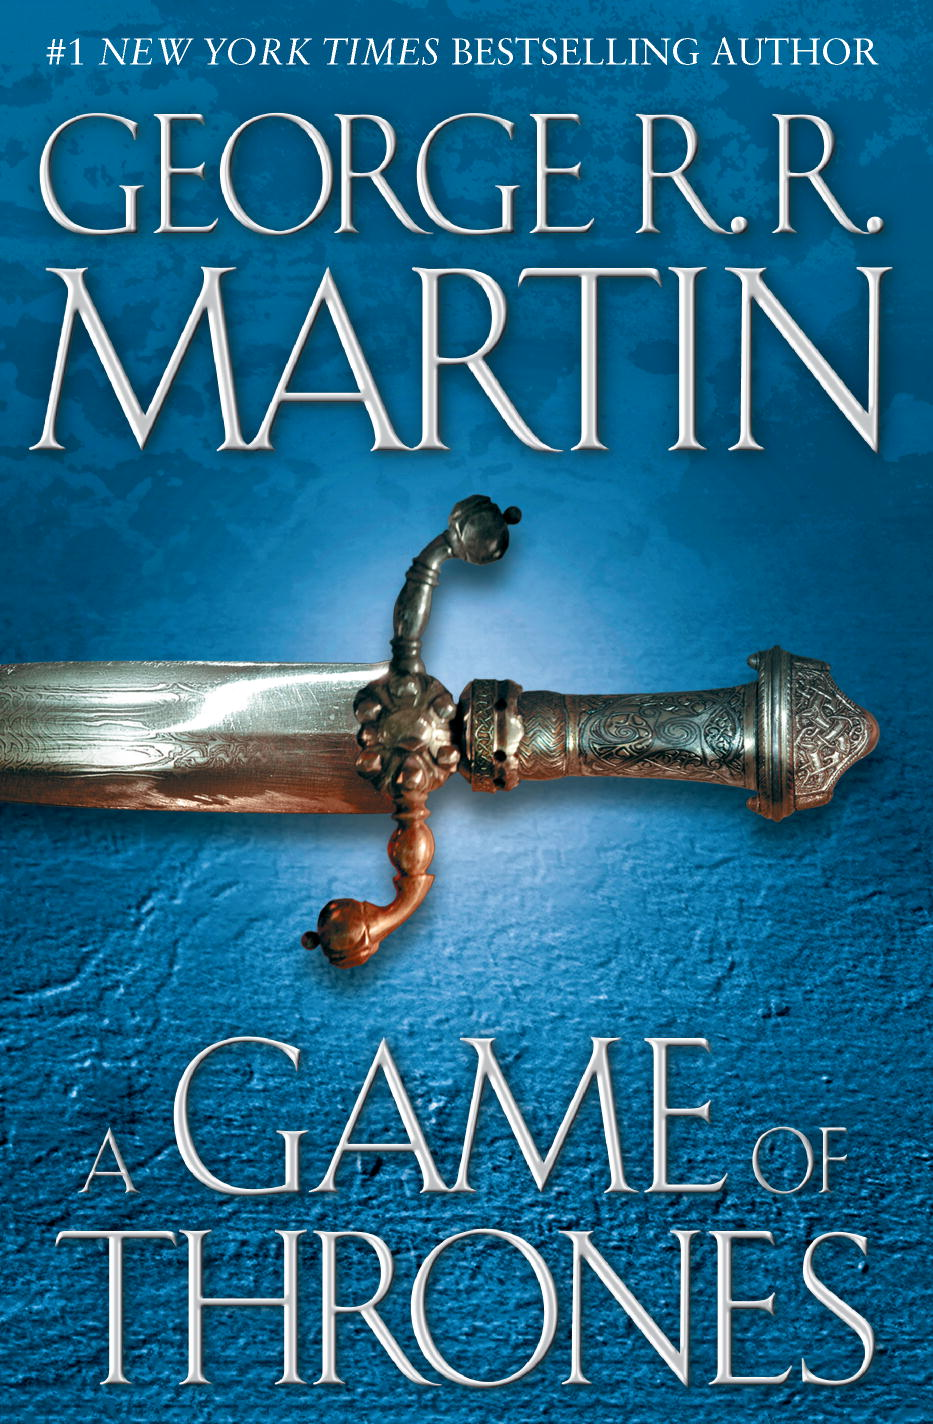 A-GAME-OF-THRONES-new-HC.jpg